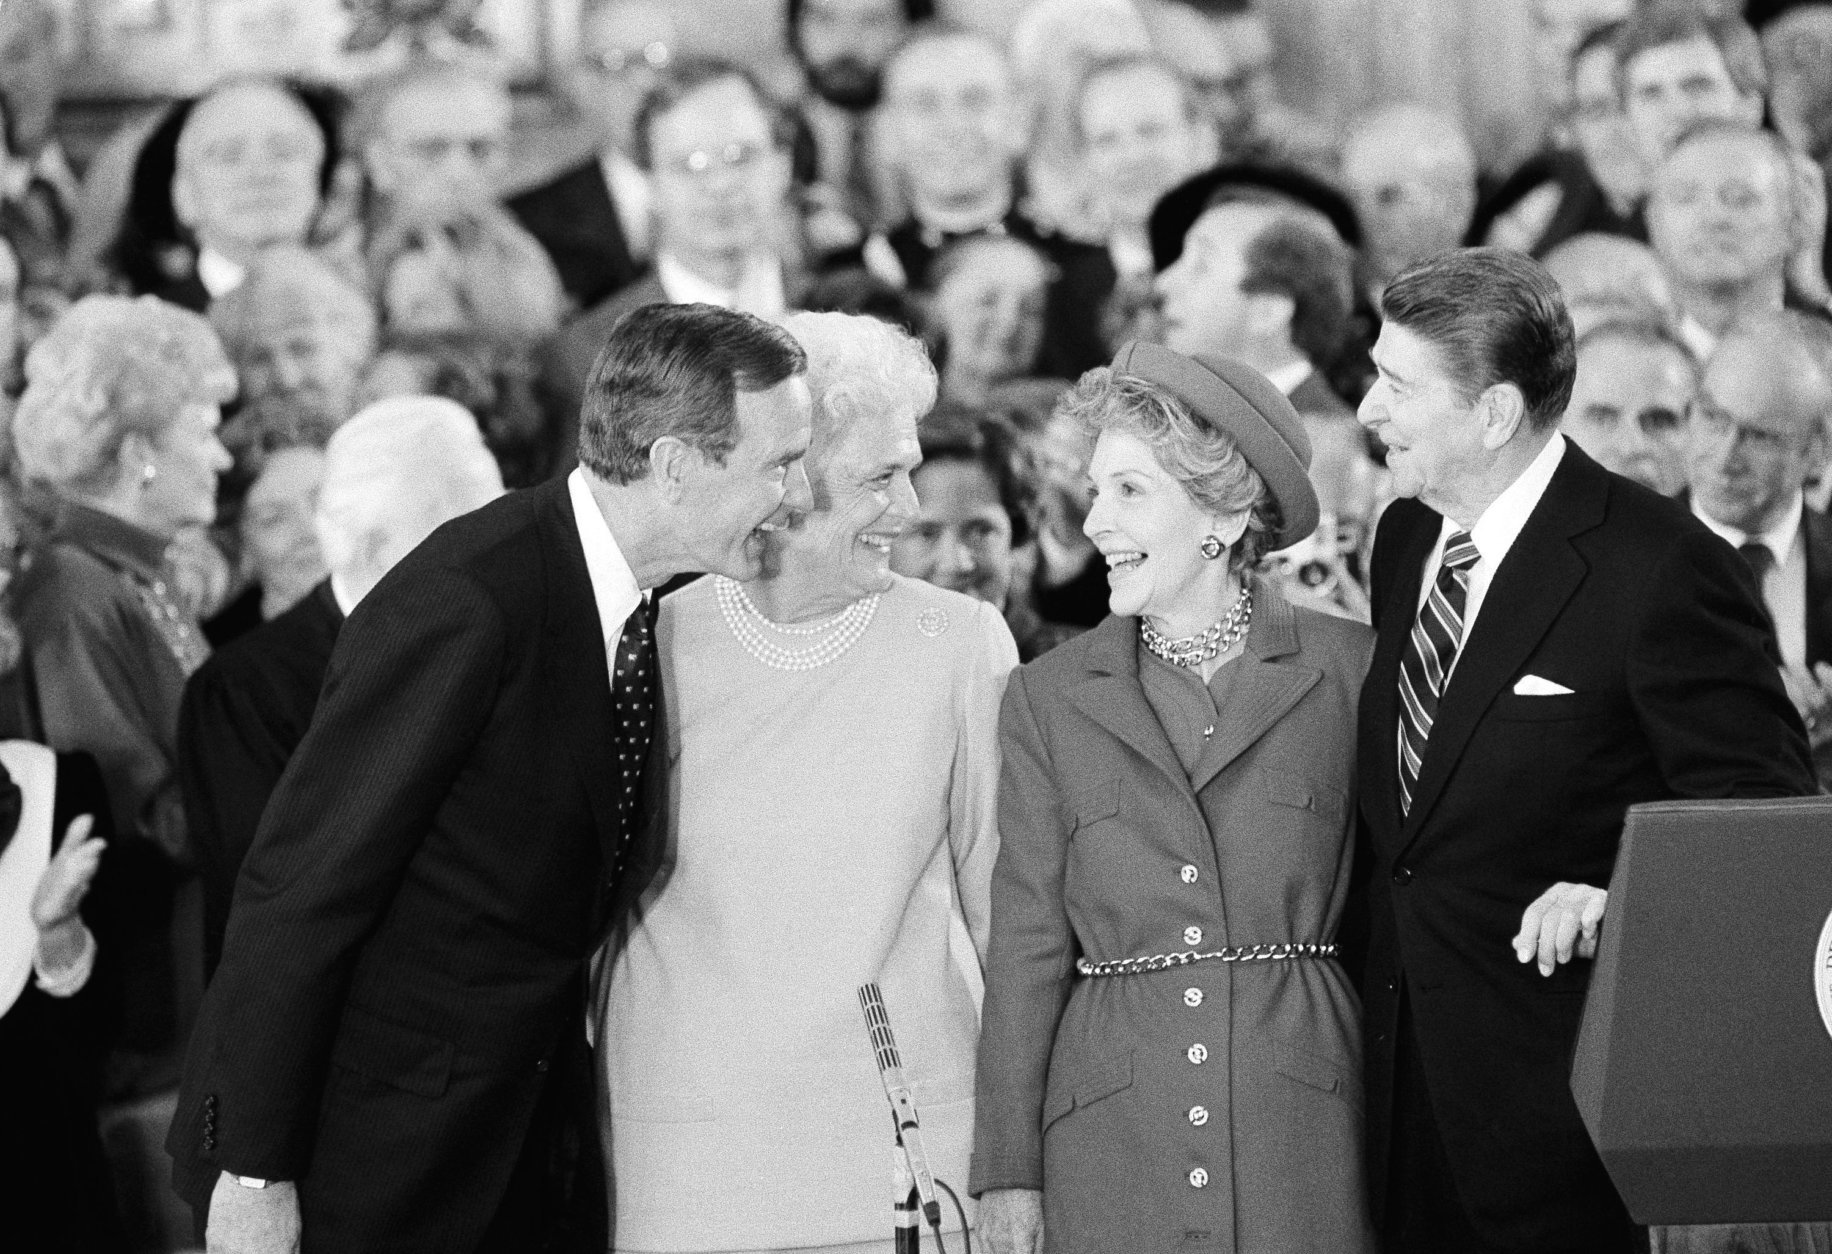 President and Mrs. Ronald Reagan, right, share a moment with Vice President and Mrs. George Bush following the oaths in the Capitol Building in Washington on Monday, Jan. 21, 1985. (AP Photo/Bob Daugherty)